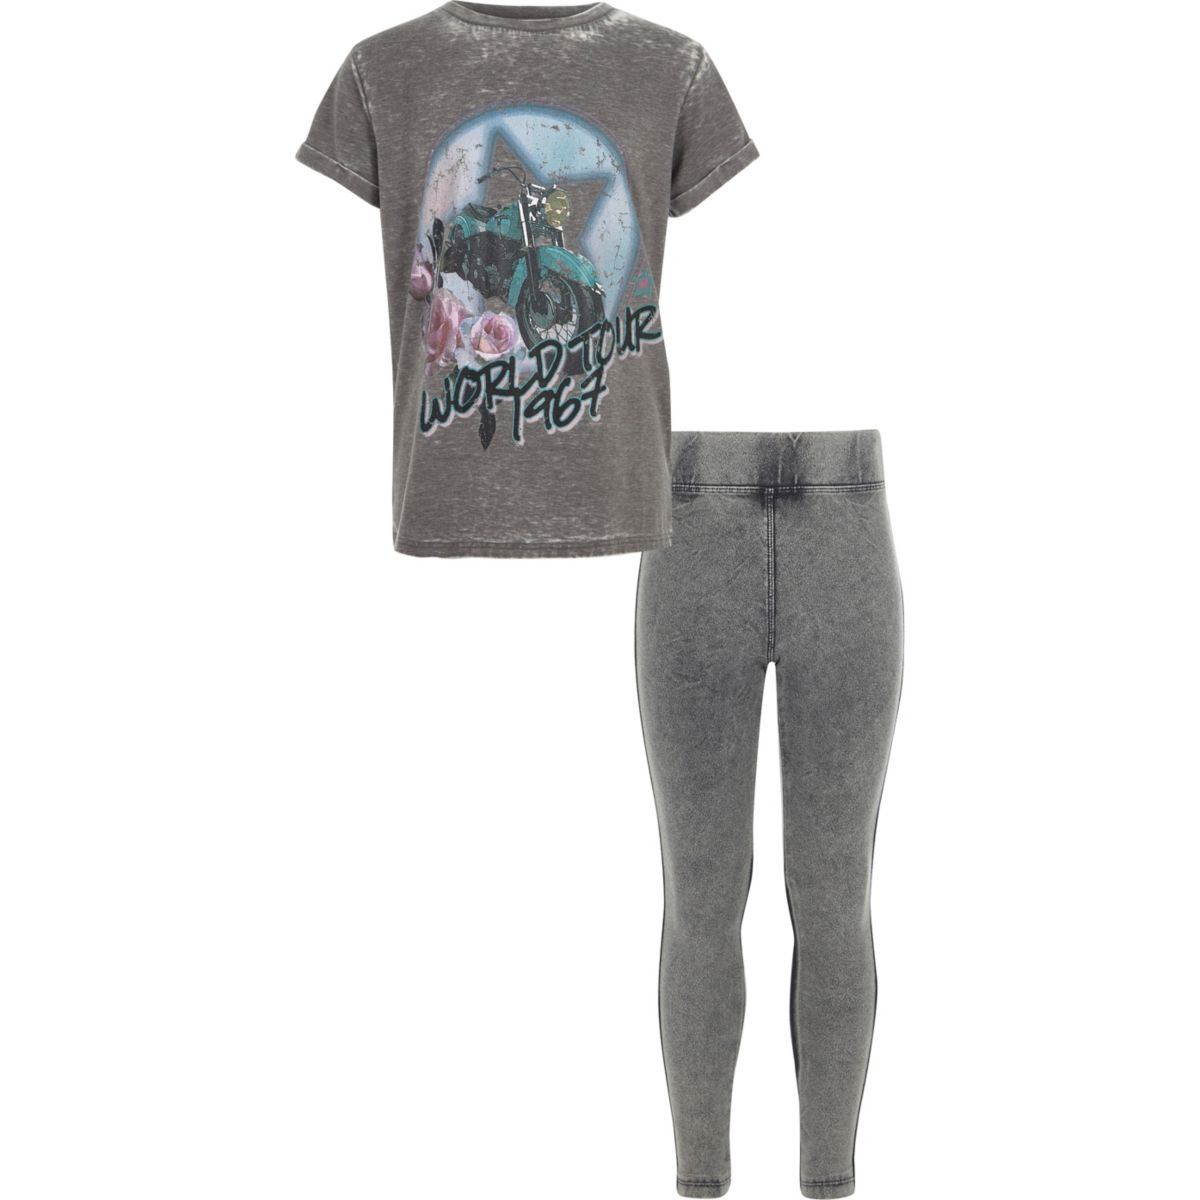 Girls grey band T-shirt and leggings outfit